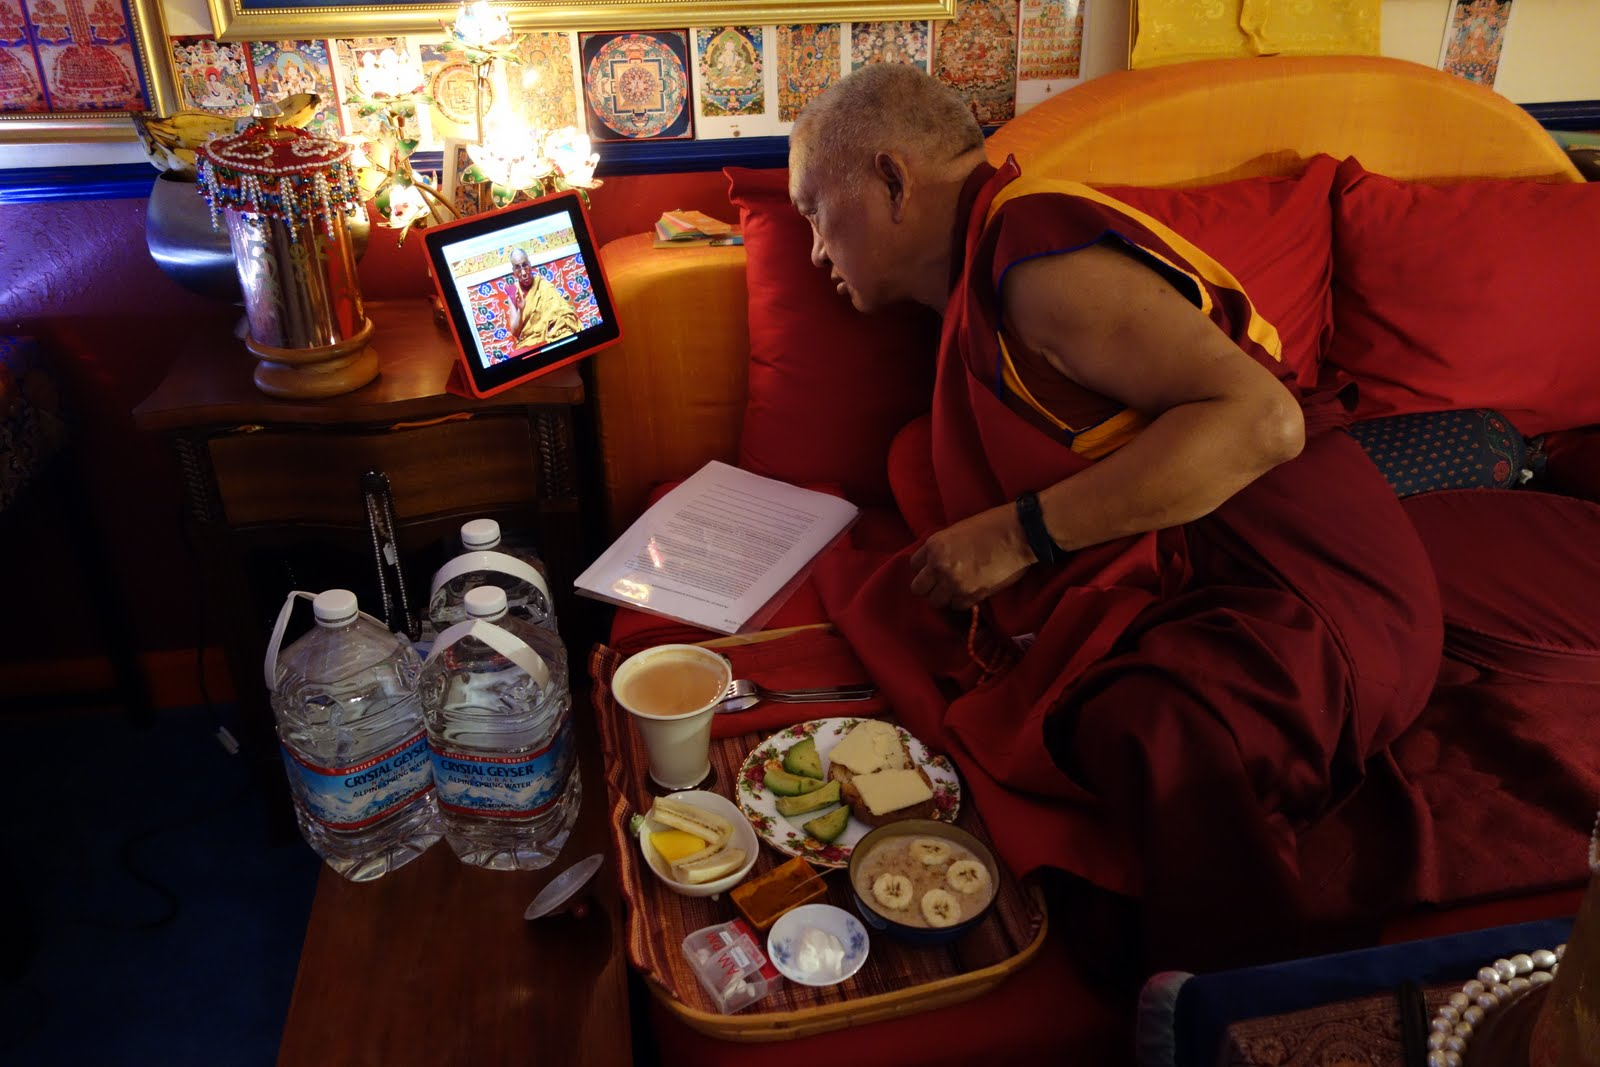 Rinpoche watching His Holiness the Dalai Lama on video being live-streamed from New York during 6 am breakfast while blessing water for sick people.Oct 18, 2013. Photo: Ven. Roger Kunsang